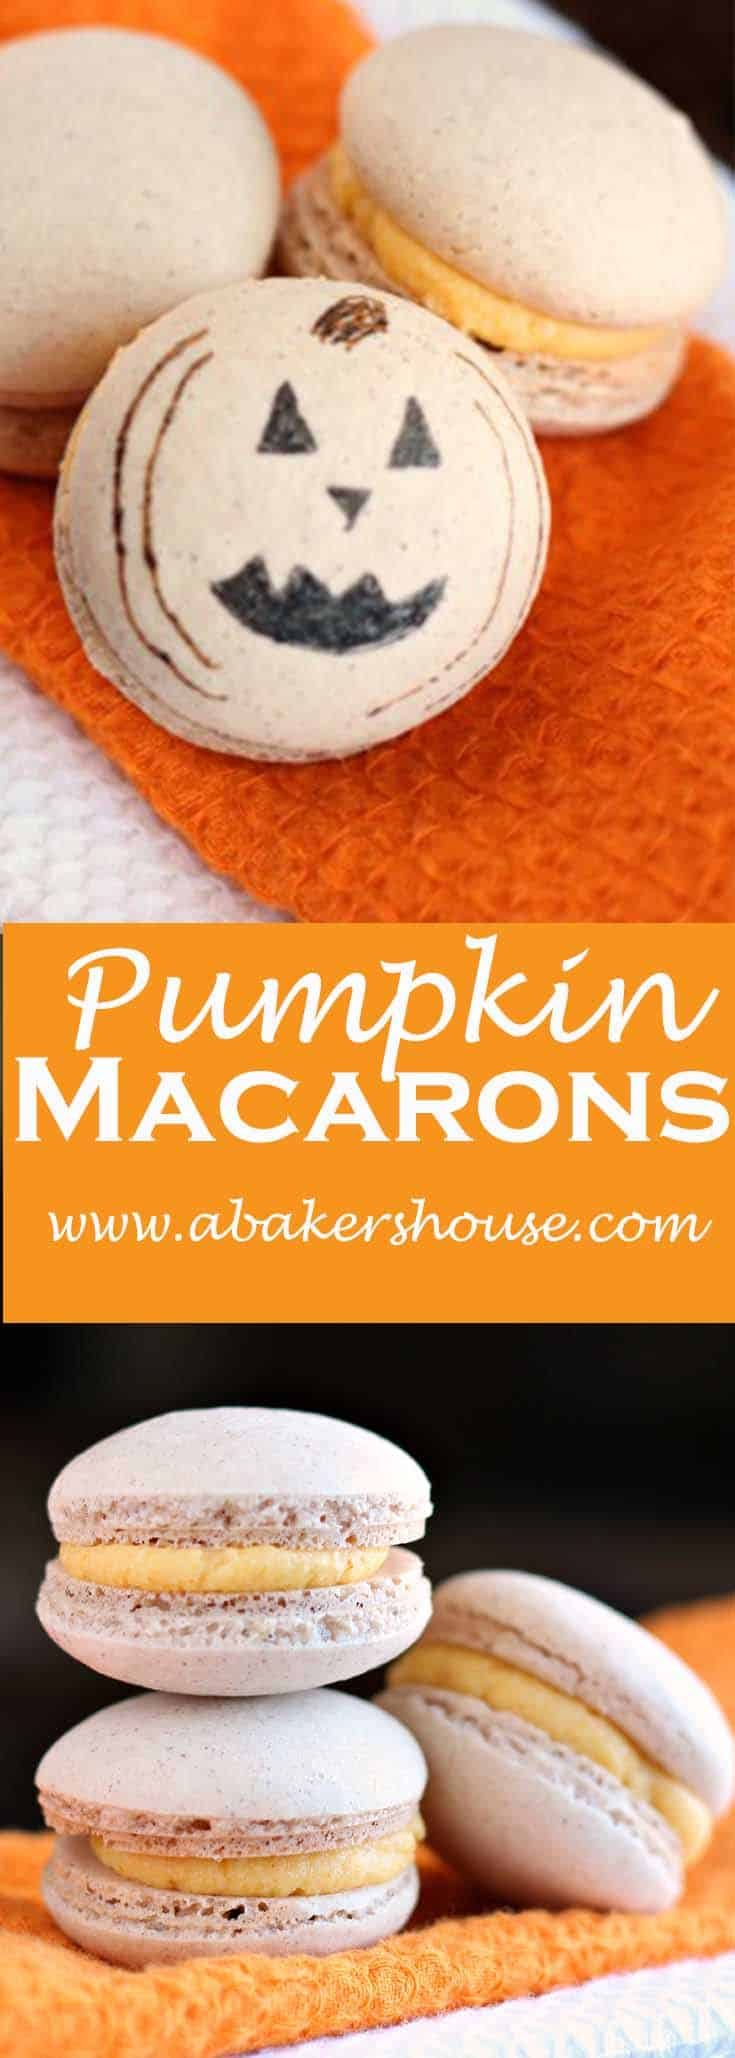 Pumpkin Macarons are a seasonal twist on standard macarons and well worth your time. Pumpkin pie spice adds flavor to the shells and pumpkin butter elevates the filling. #abakershouse #pumpkin #macarons #jackolantern #halloween